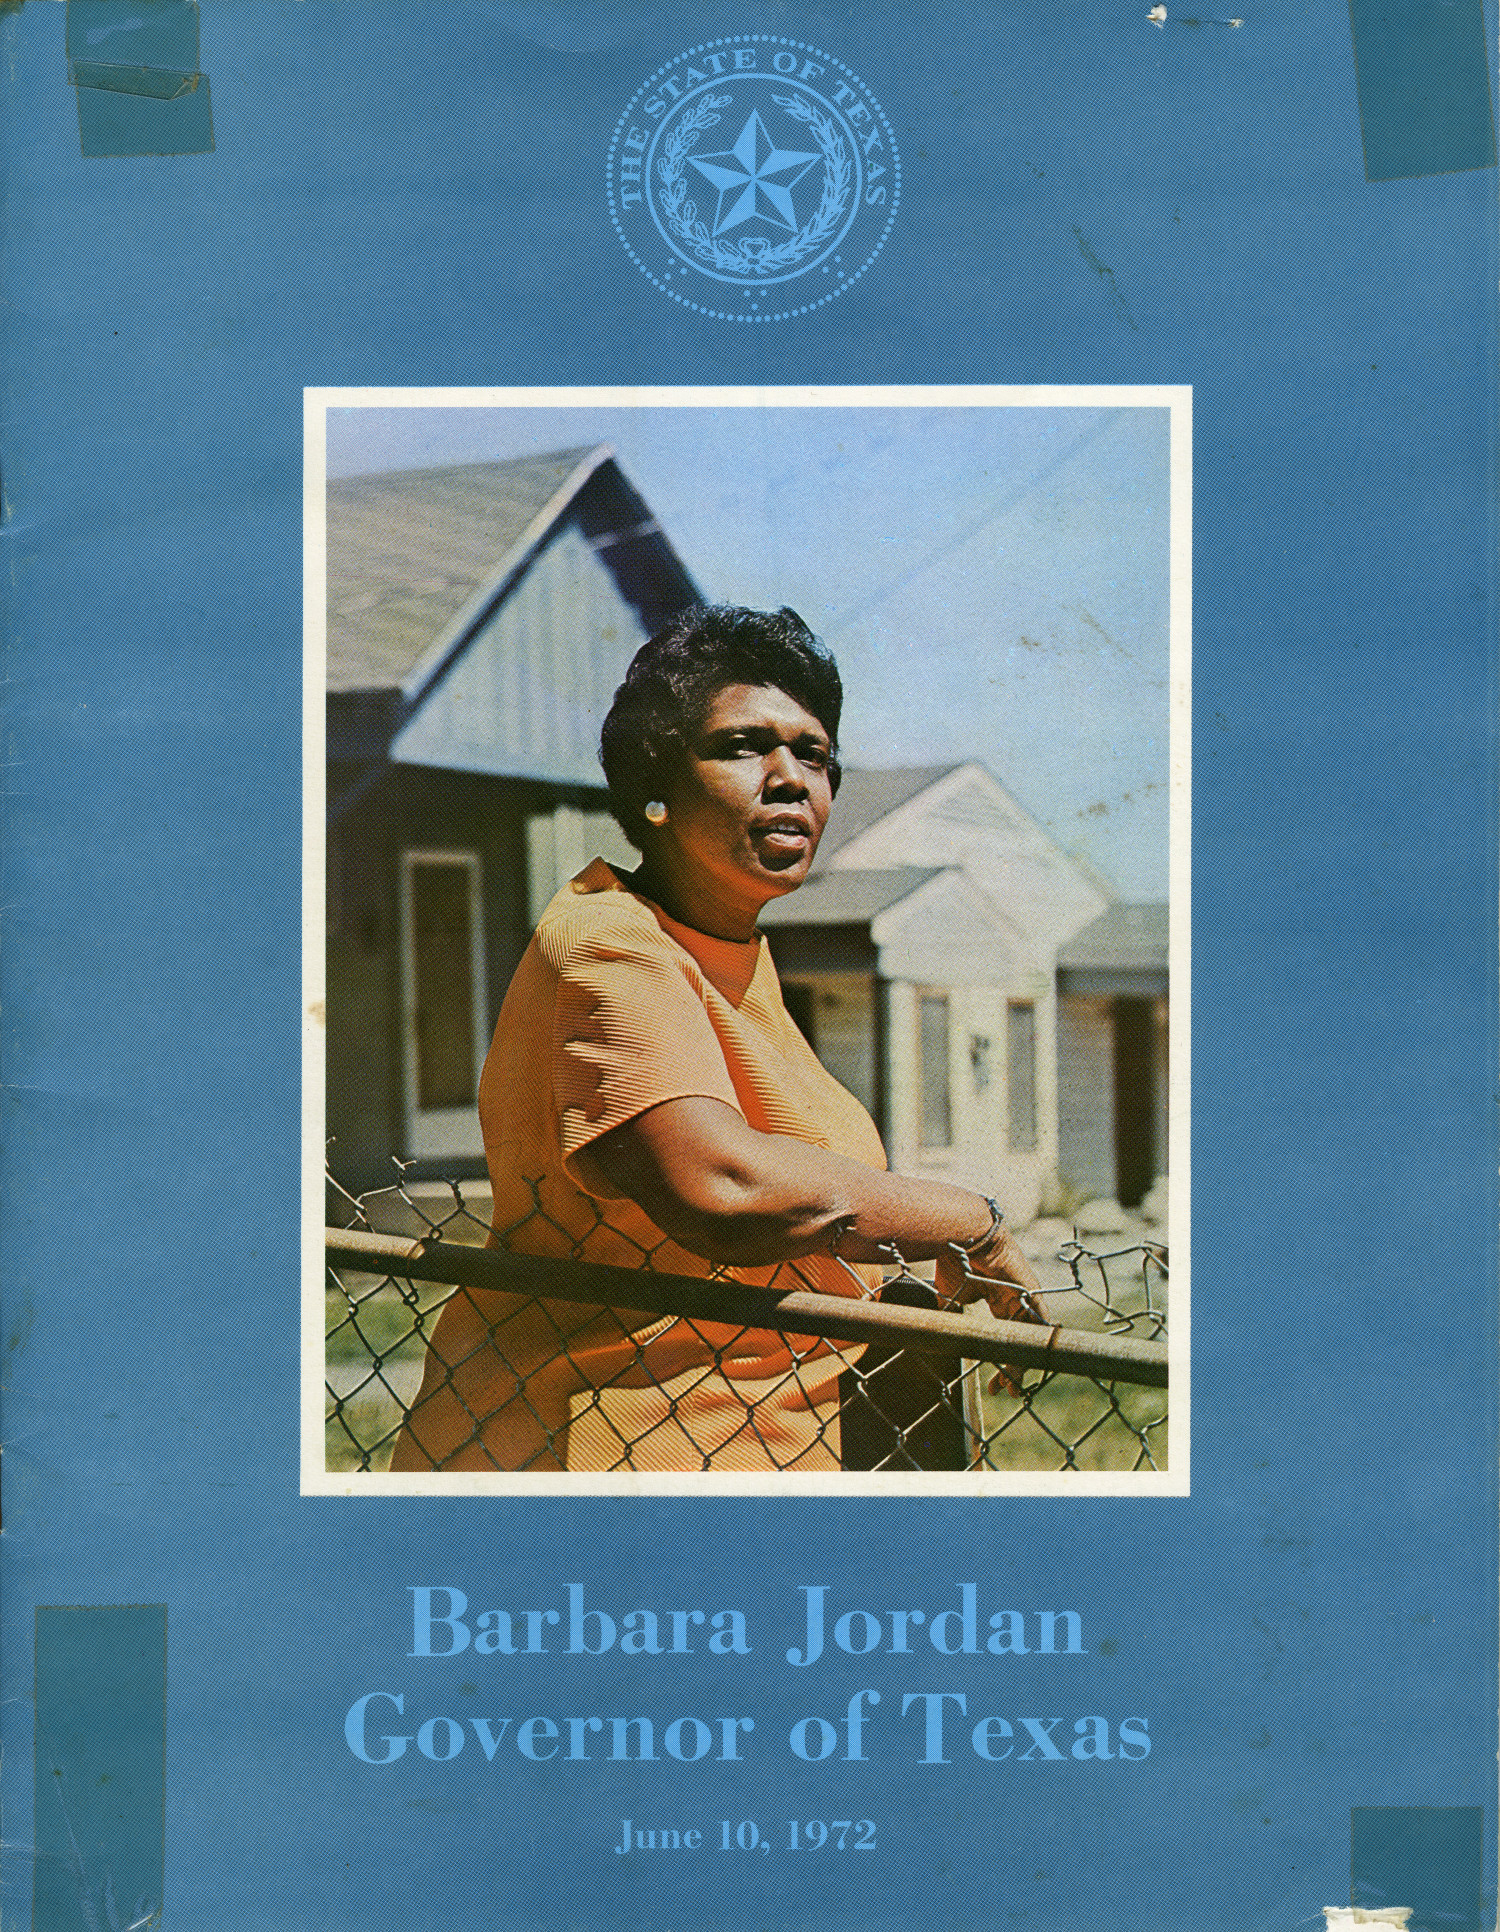 Barbara Jordan - Governor of Texas for a day - June 10, 1972                                                                                                      [Sequence #]: 1 of 8